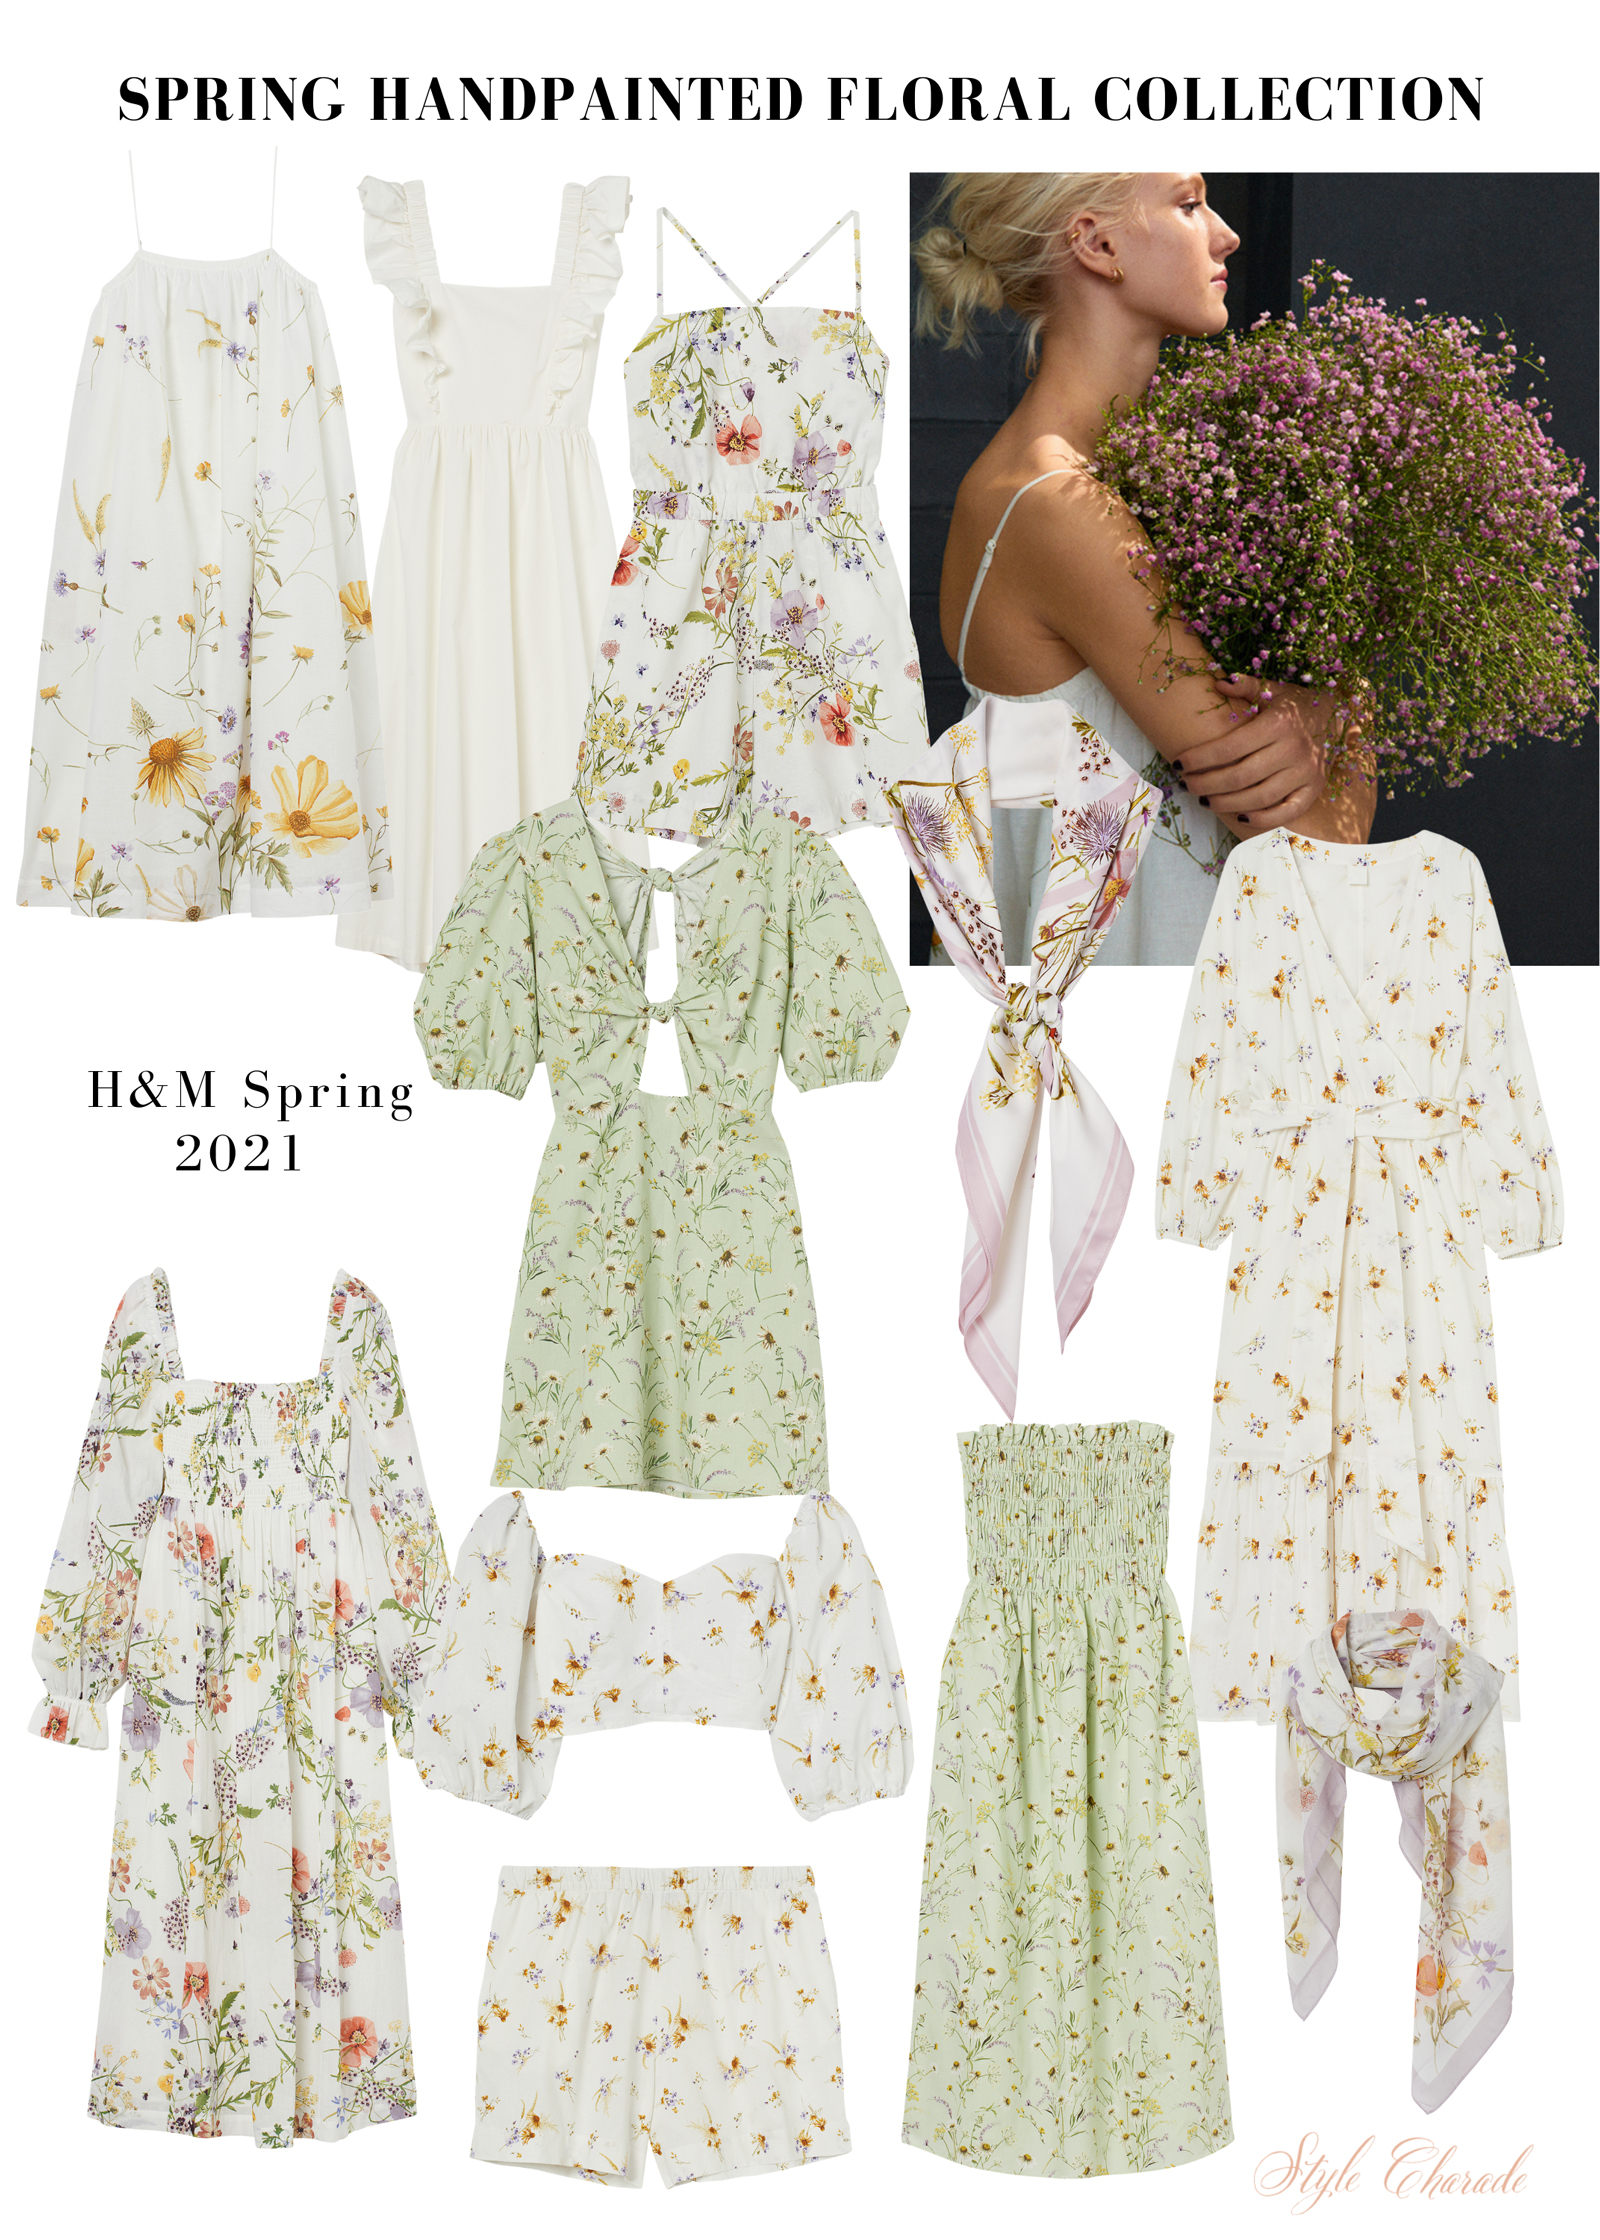 HM Handpainted Floral Collection